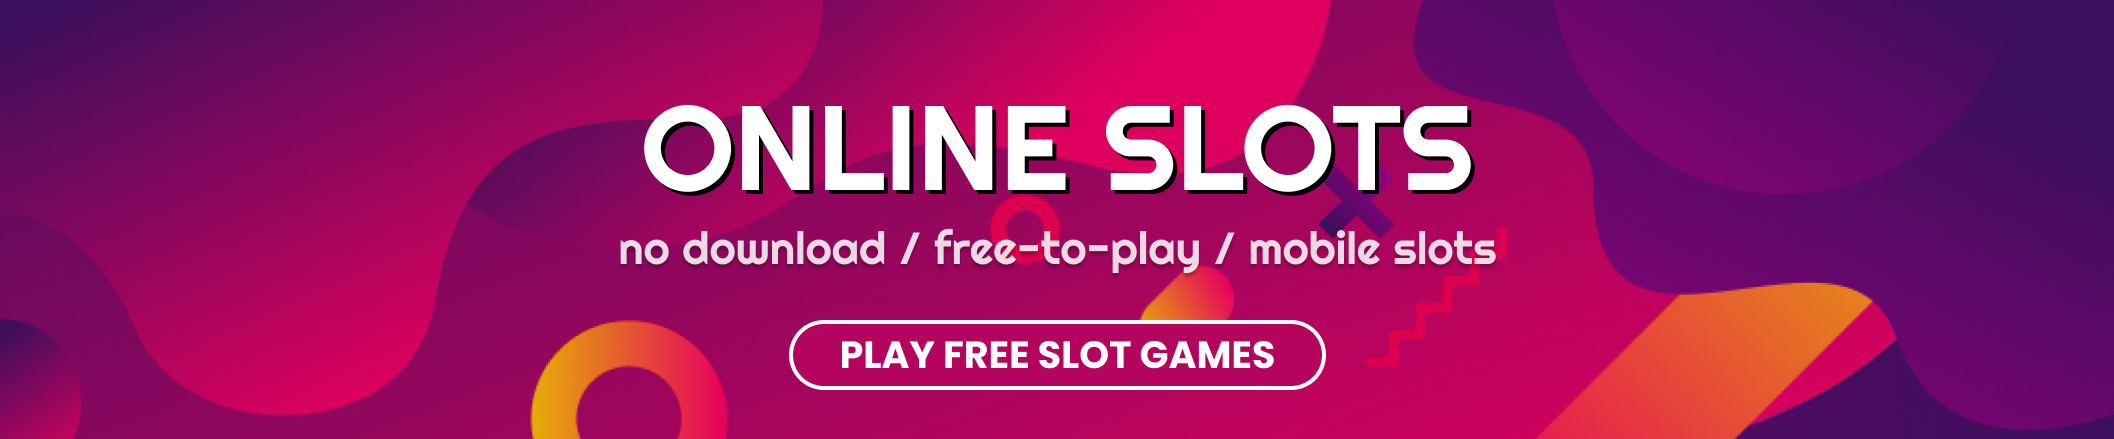 Online Slots: no download, free-to-play, mobile slots